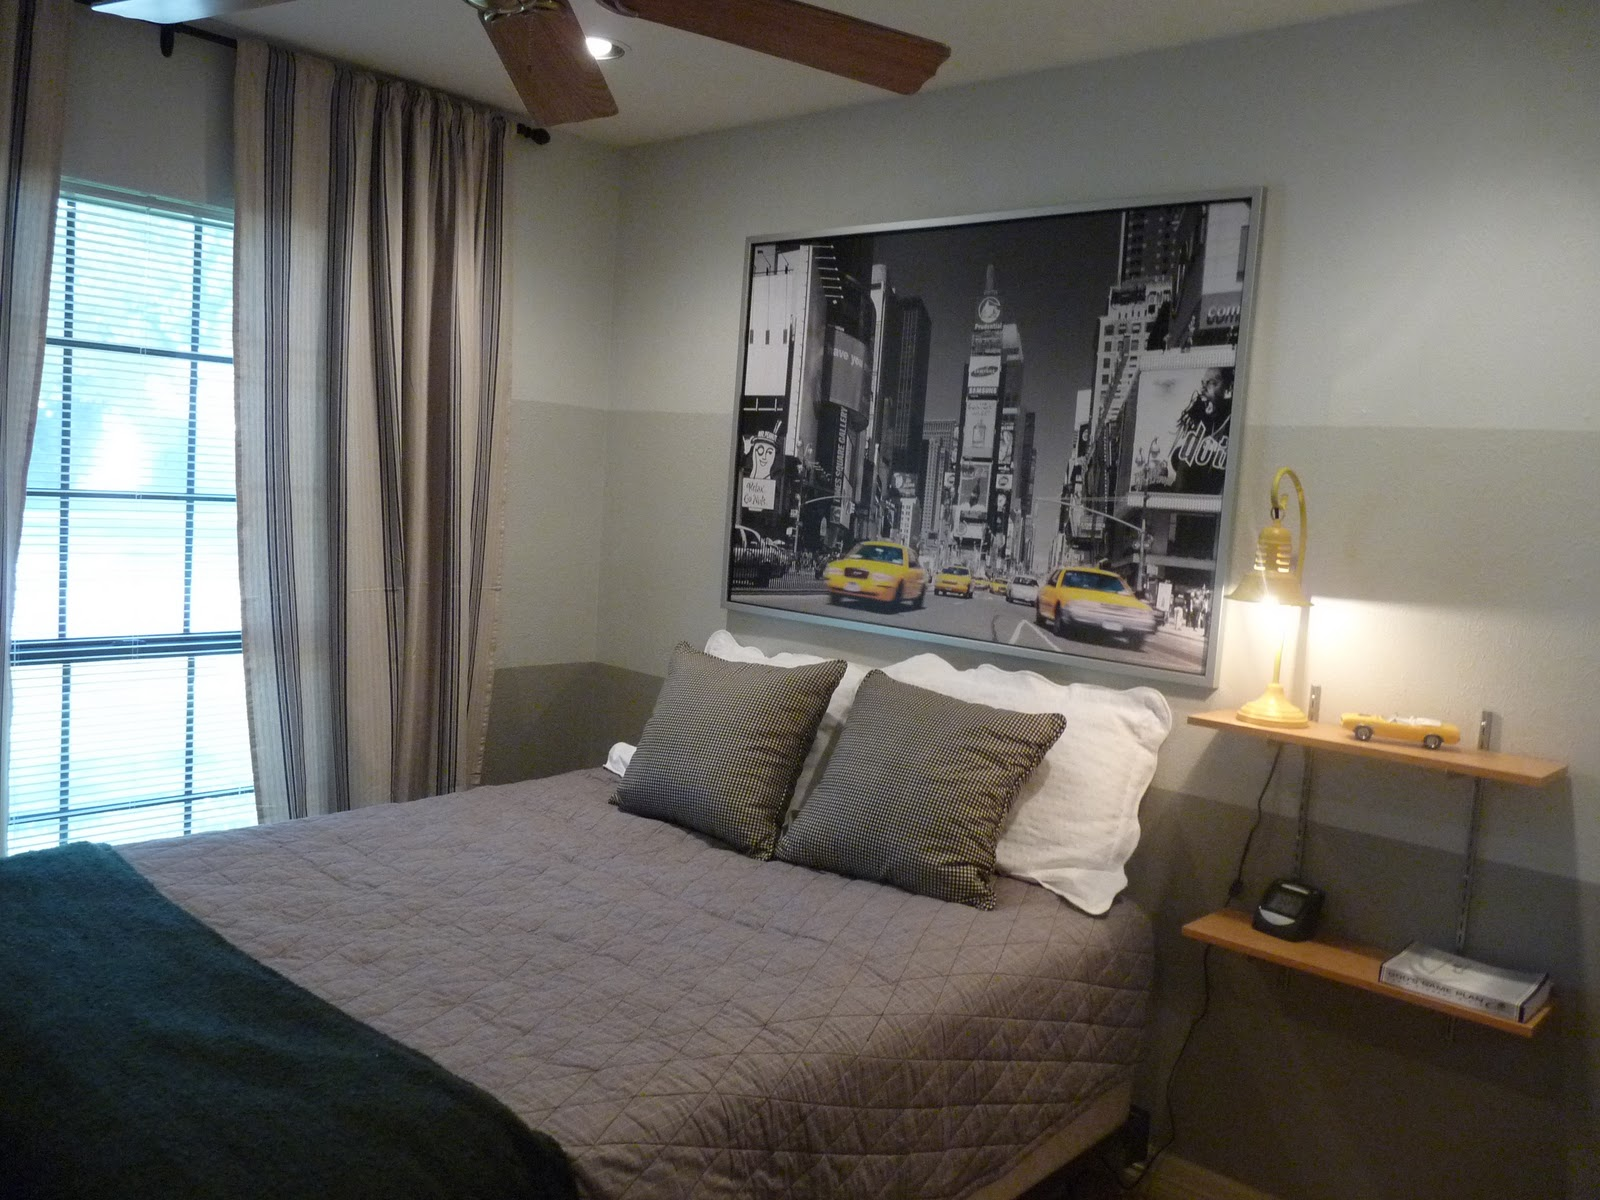 Manly Guest Room Makeover